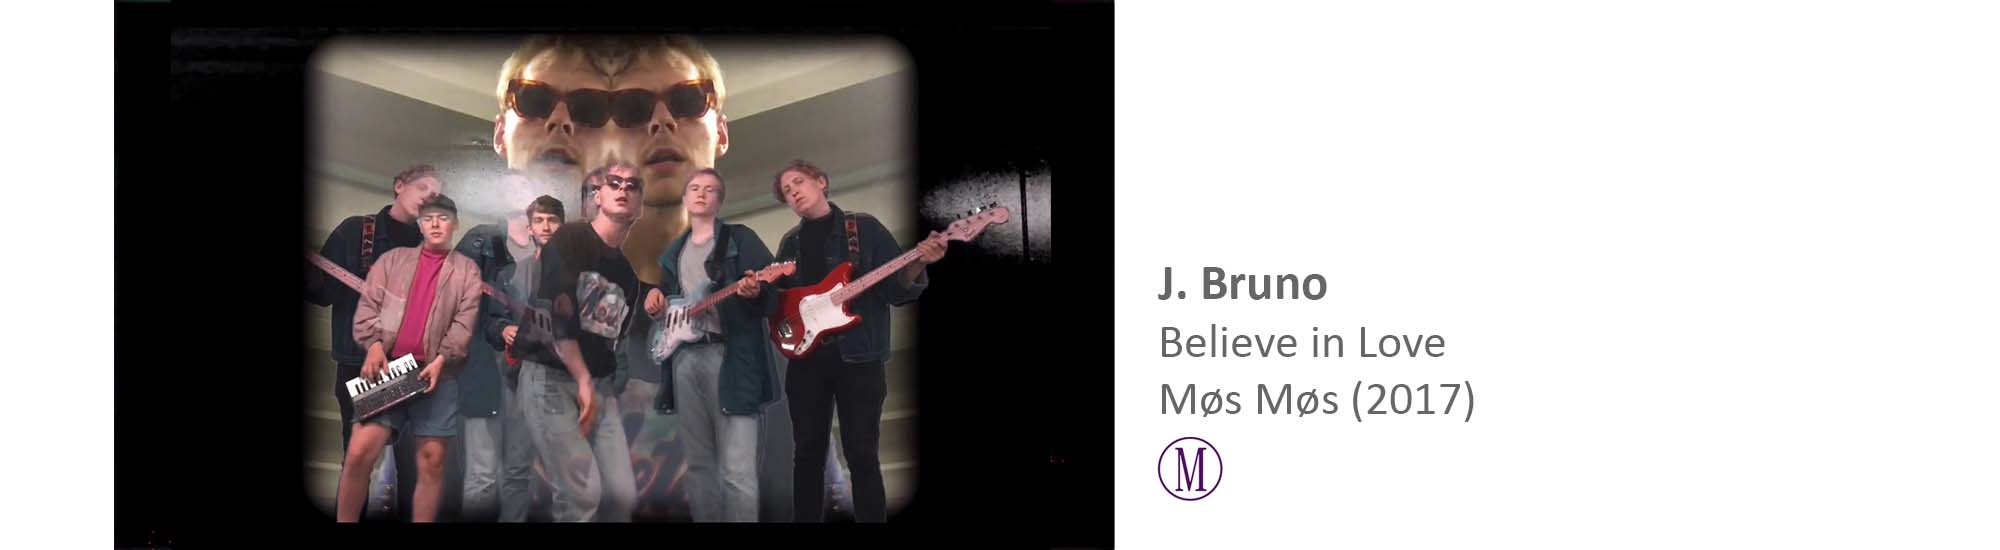 frederik brandt jakobsen j. bruno believe in love møs møs 2017 master mastering producer single spotify